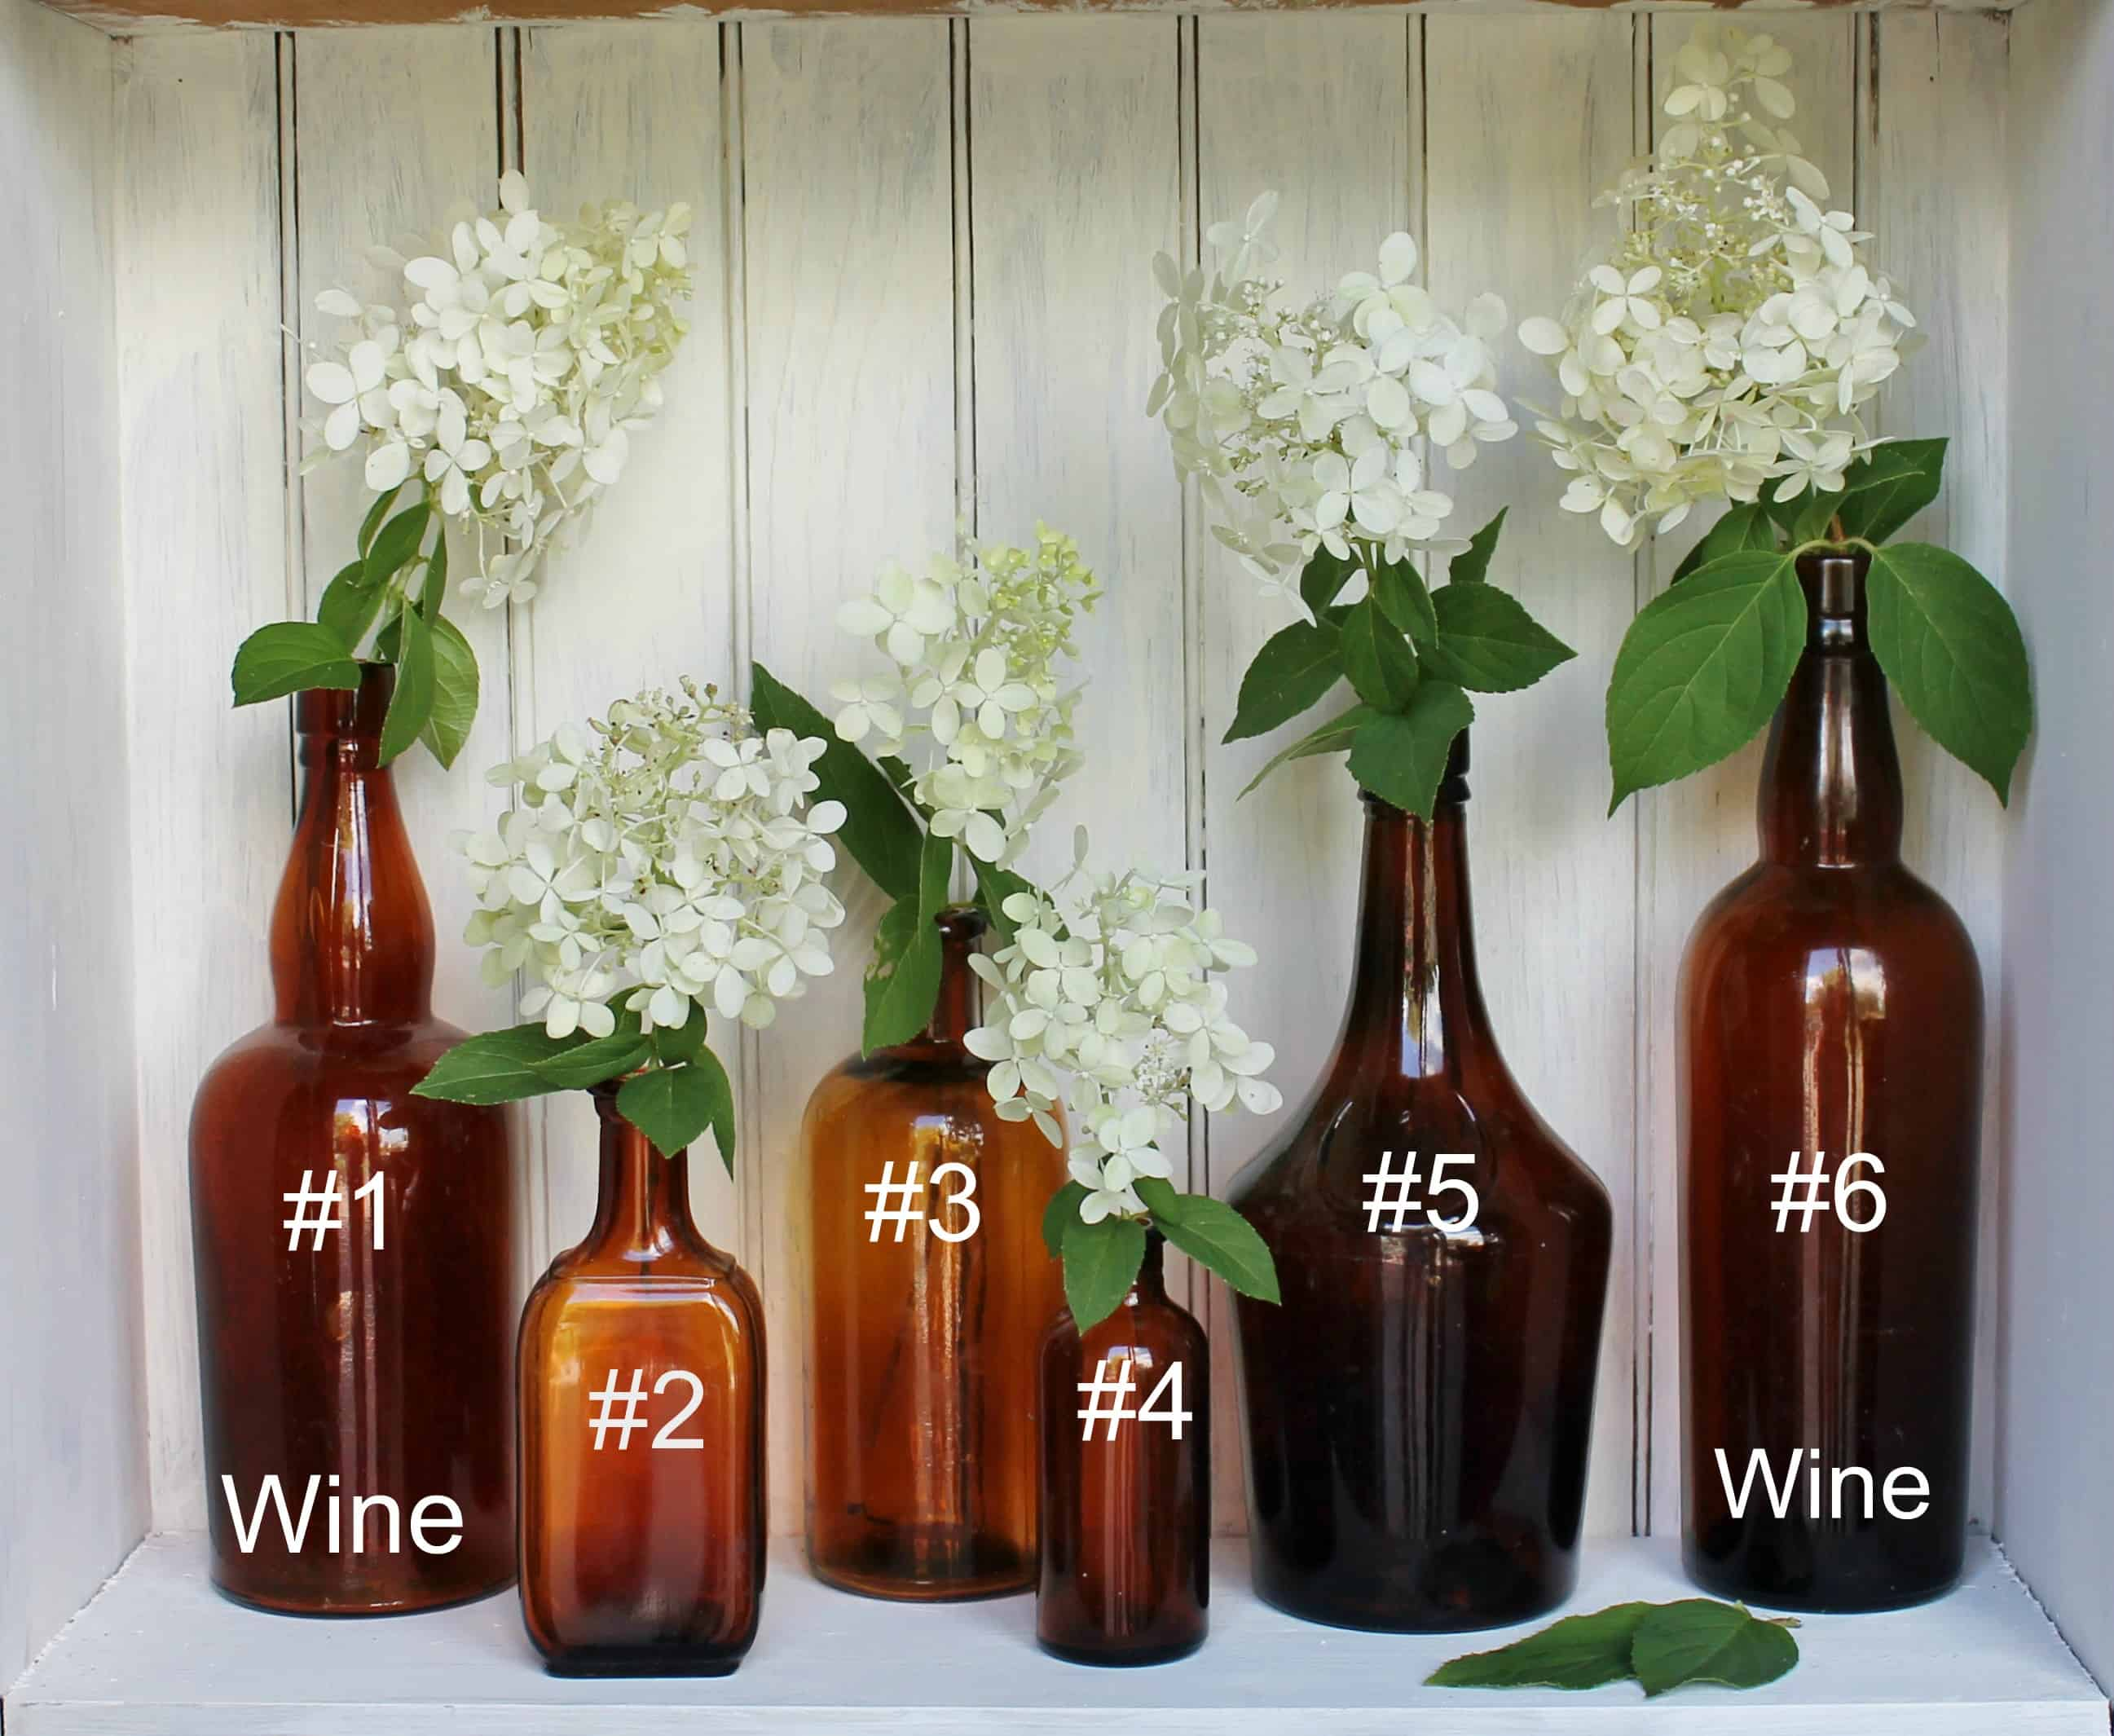 Vintage amber bottles wine bottle id and #s